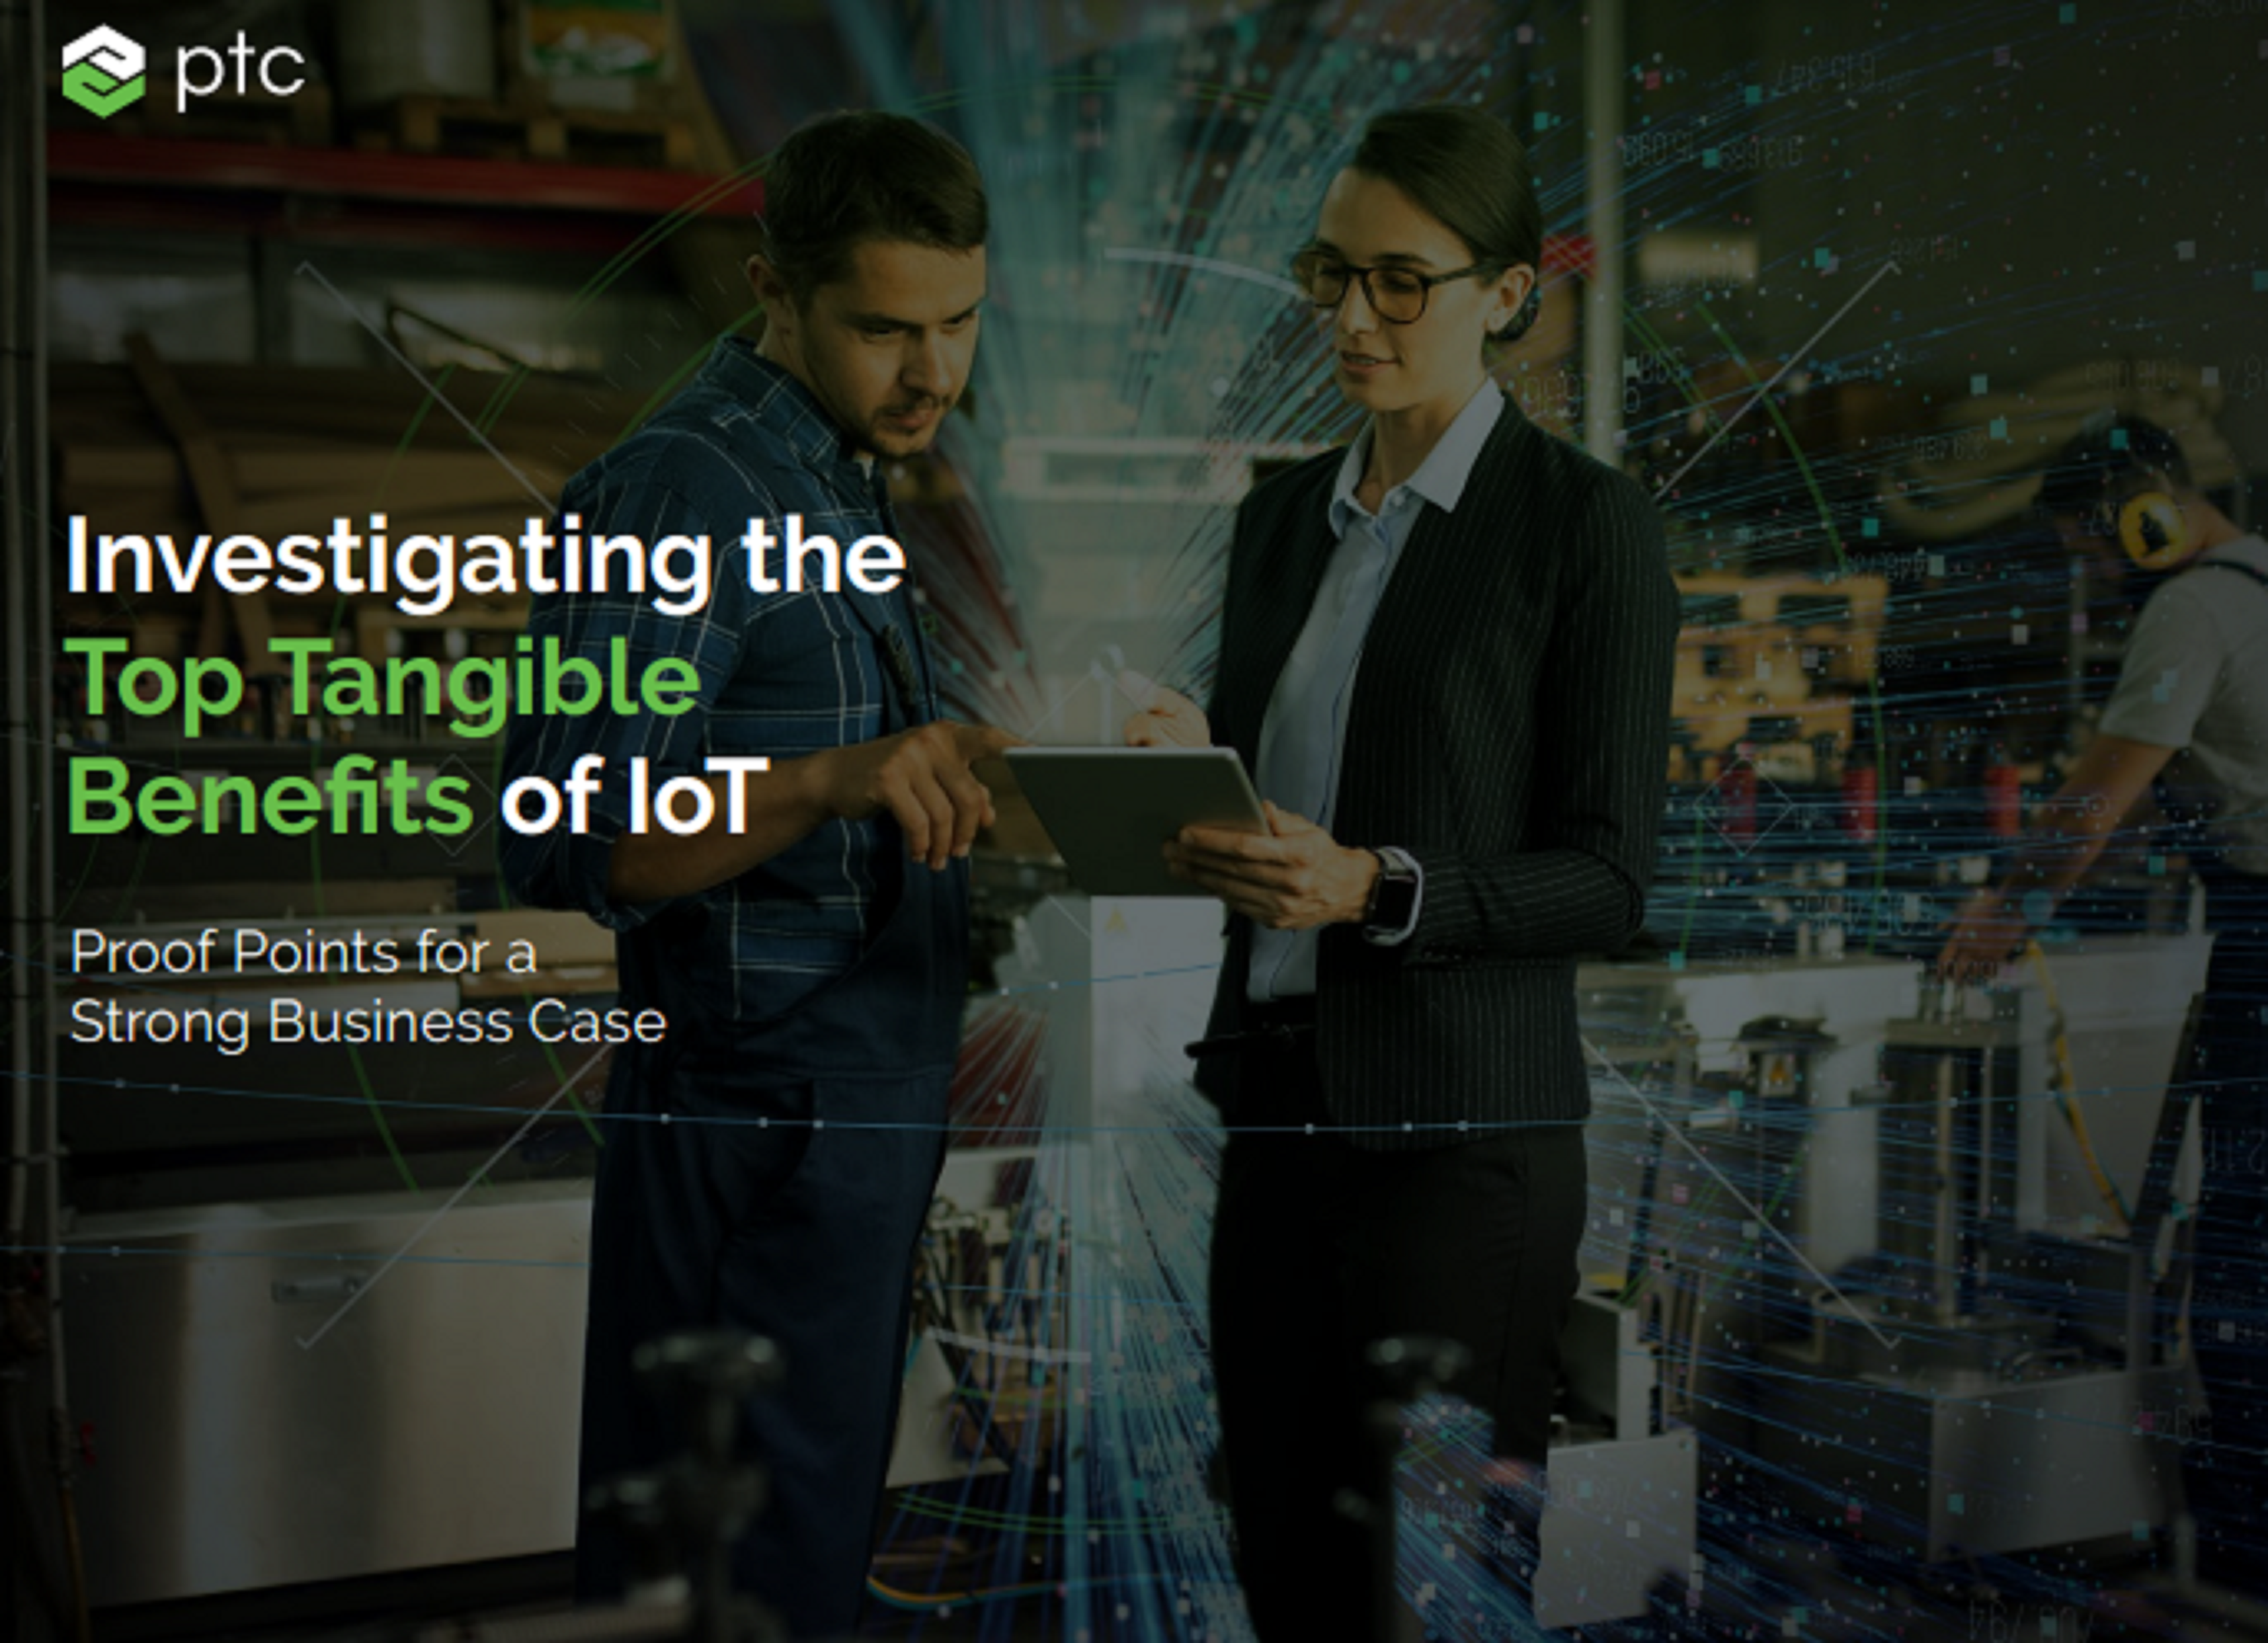 Investigating the Top Tangible Benefits of IoT